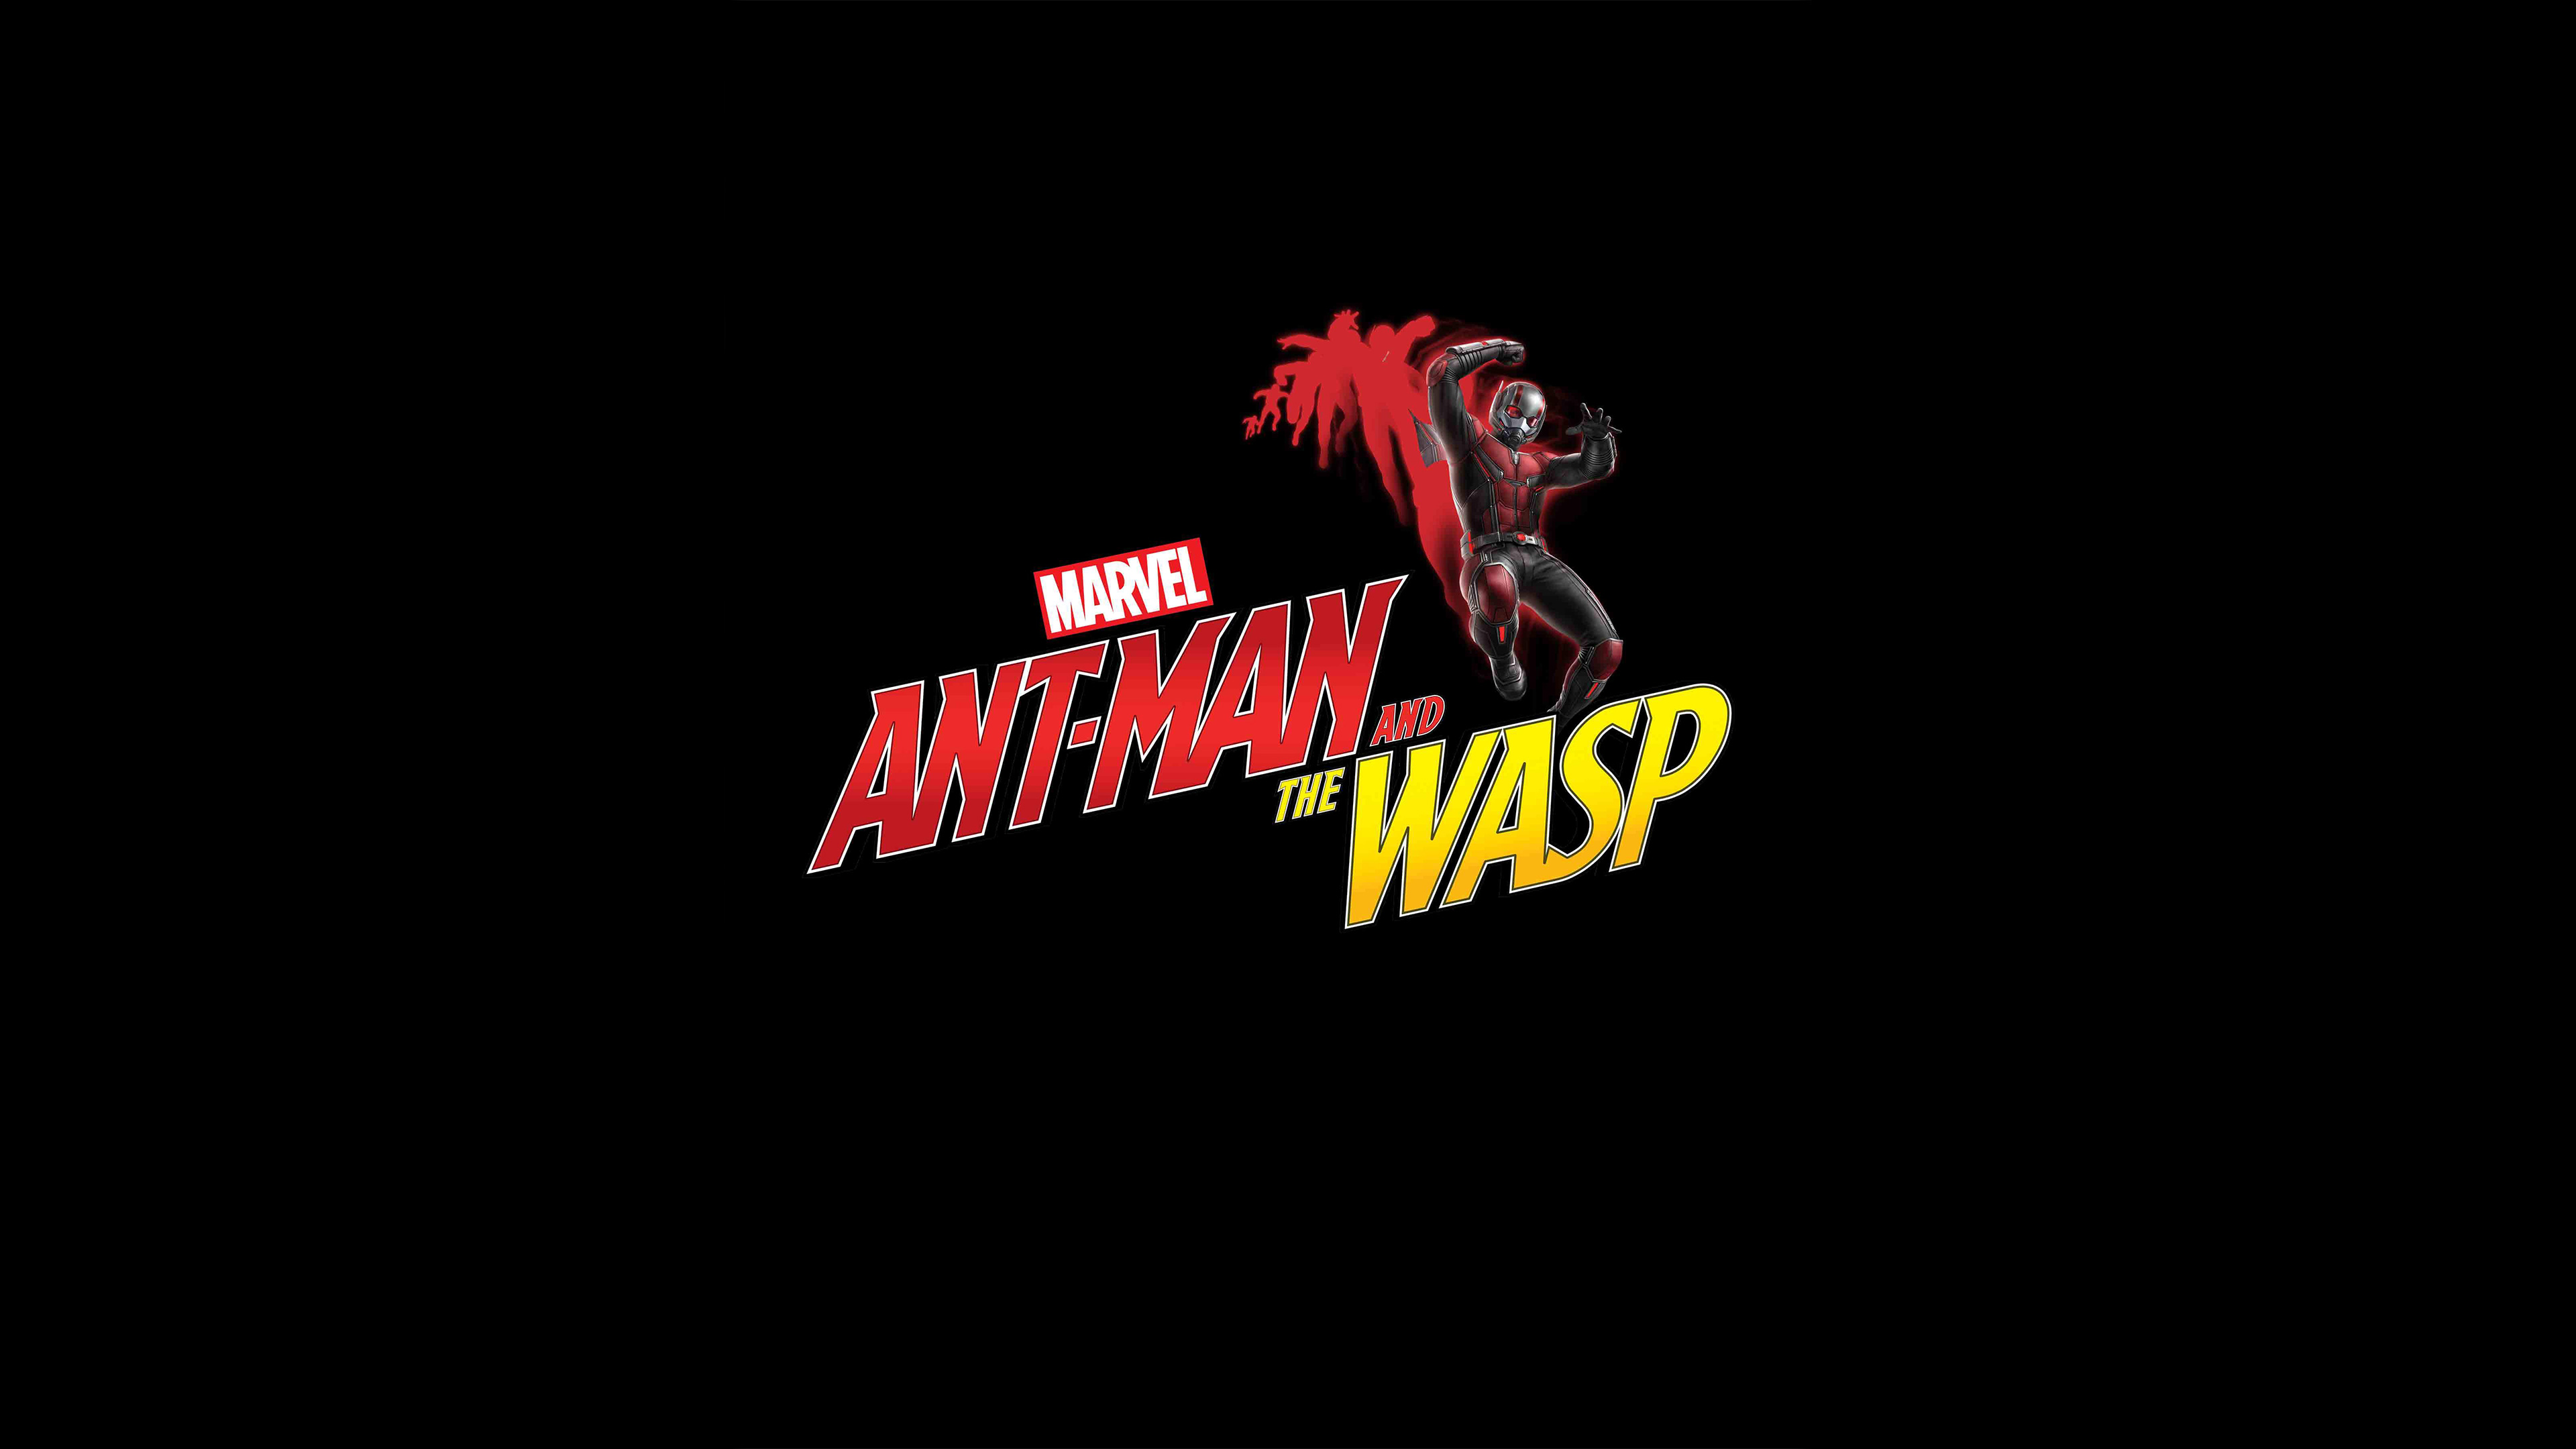 Ant Man And The Wasp 4K Wallpapers